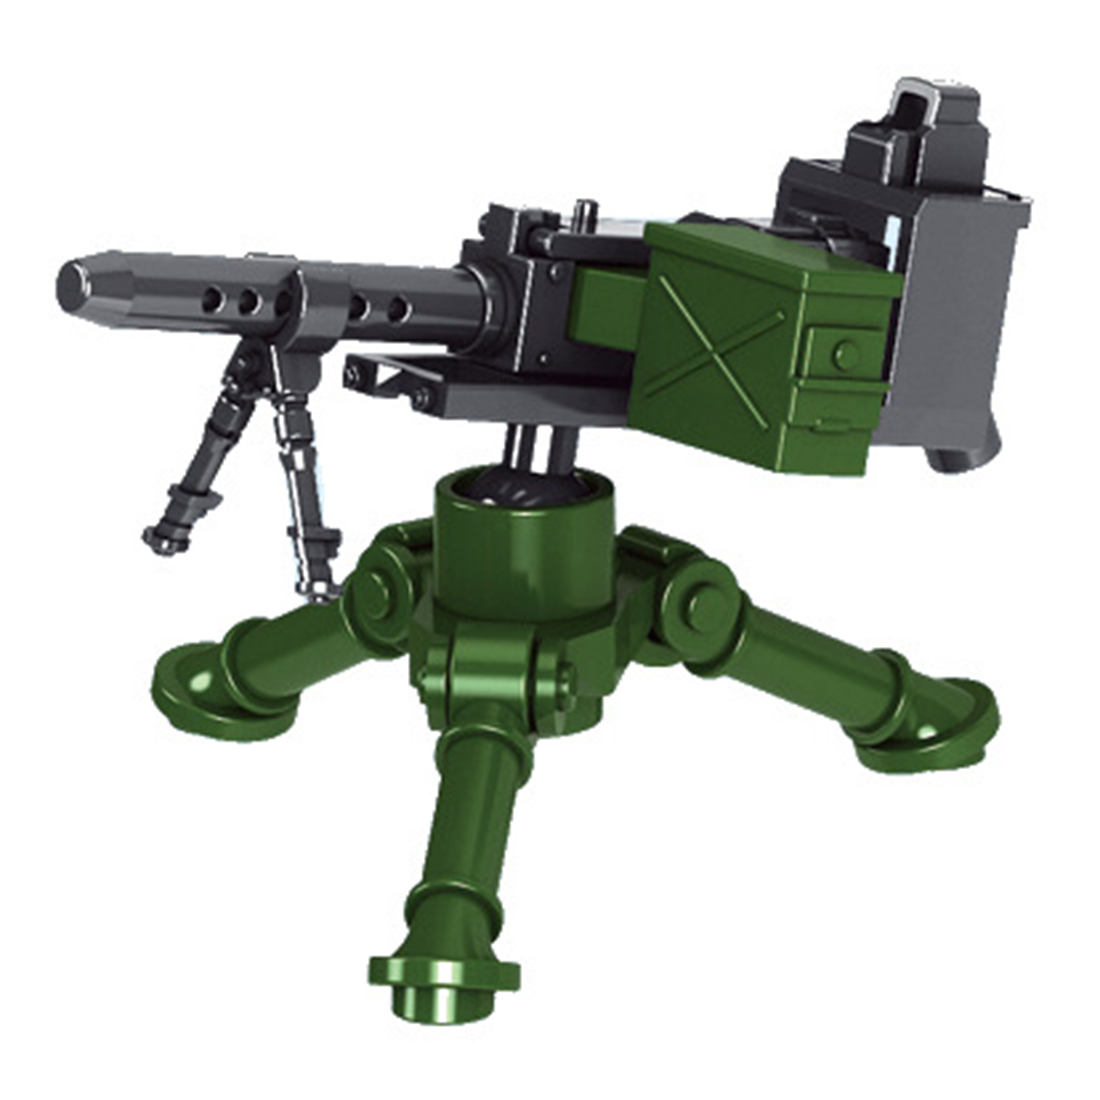 1pcs/2pcs/4pcs World War II German Army Military Small Particles Building Blocks Weapons Parts Puzzle Toys For Kid Birthday Gift